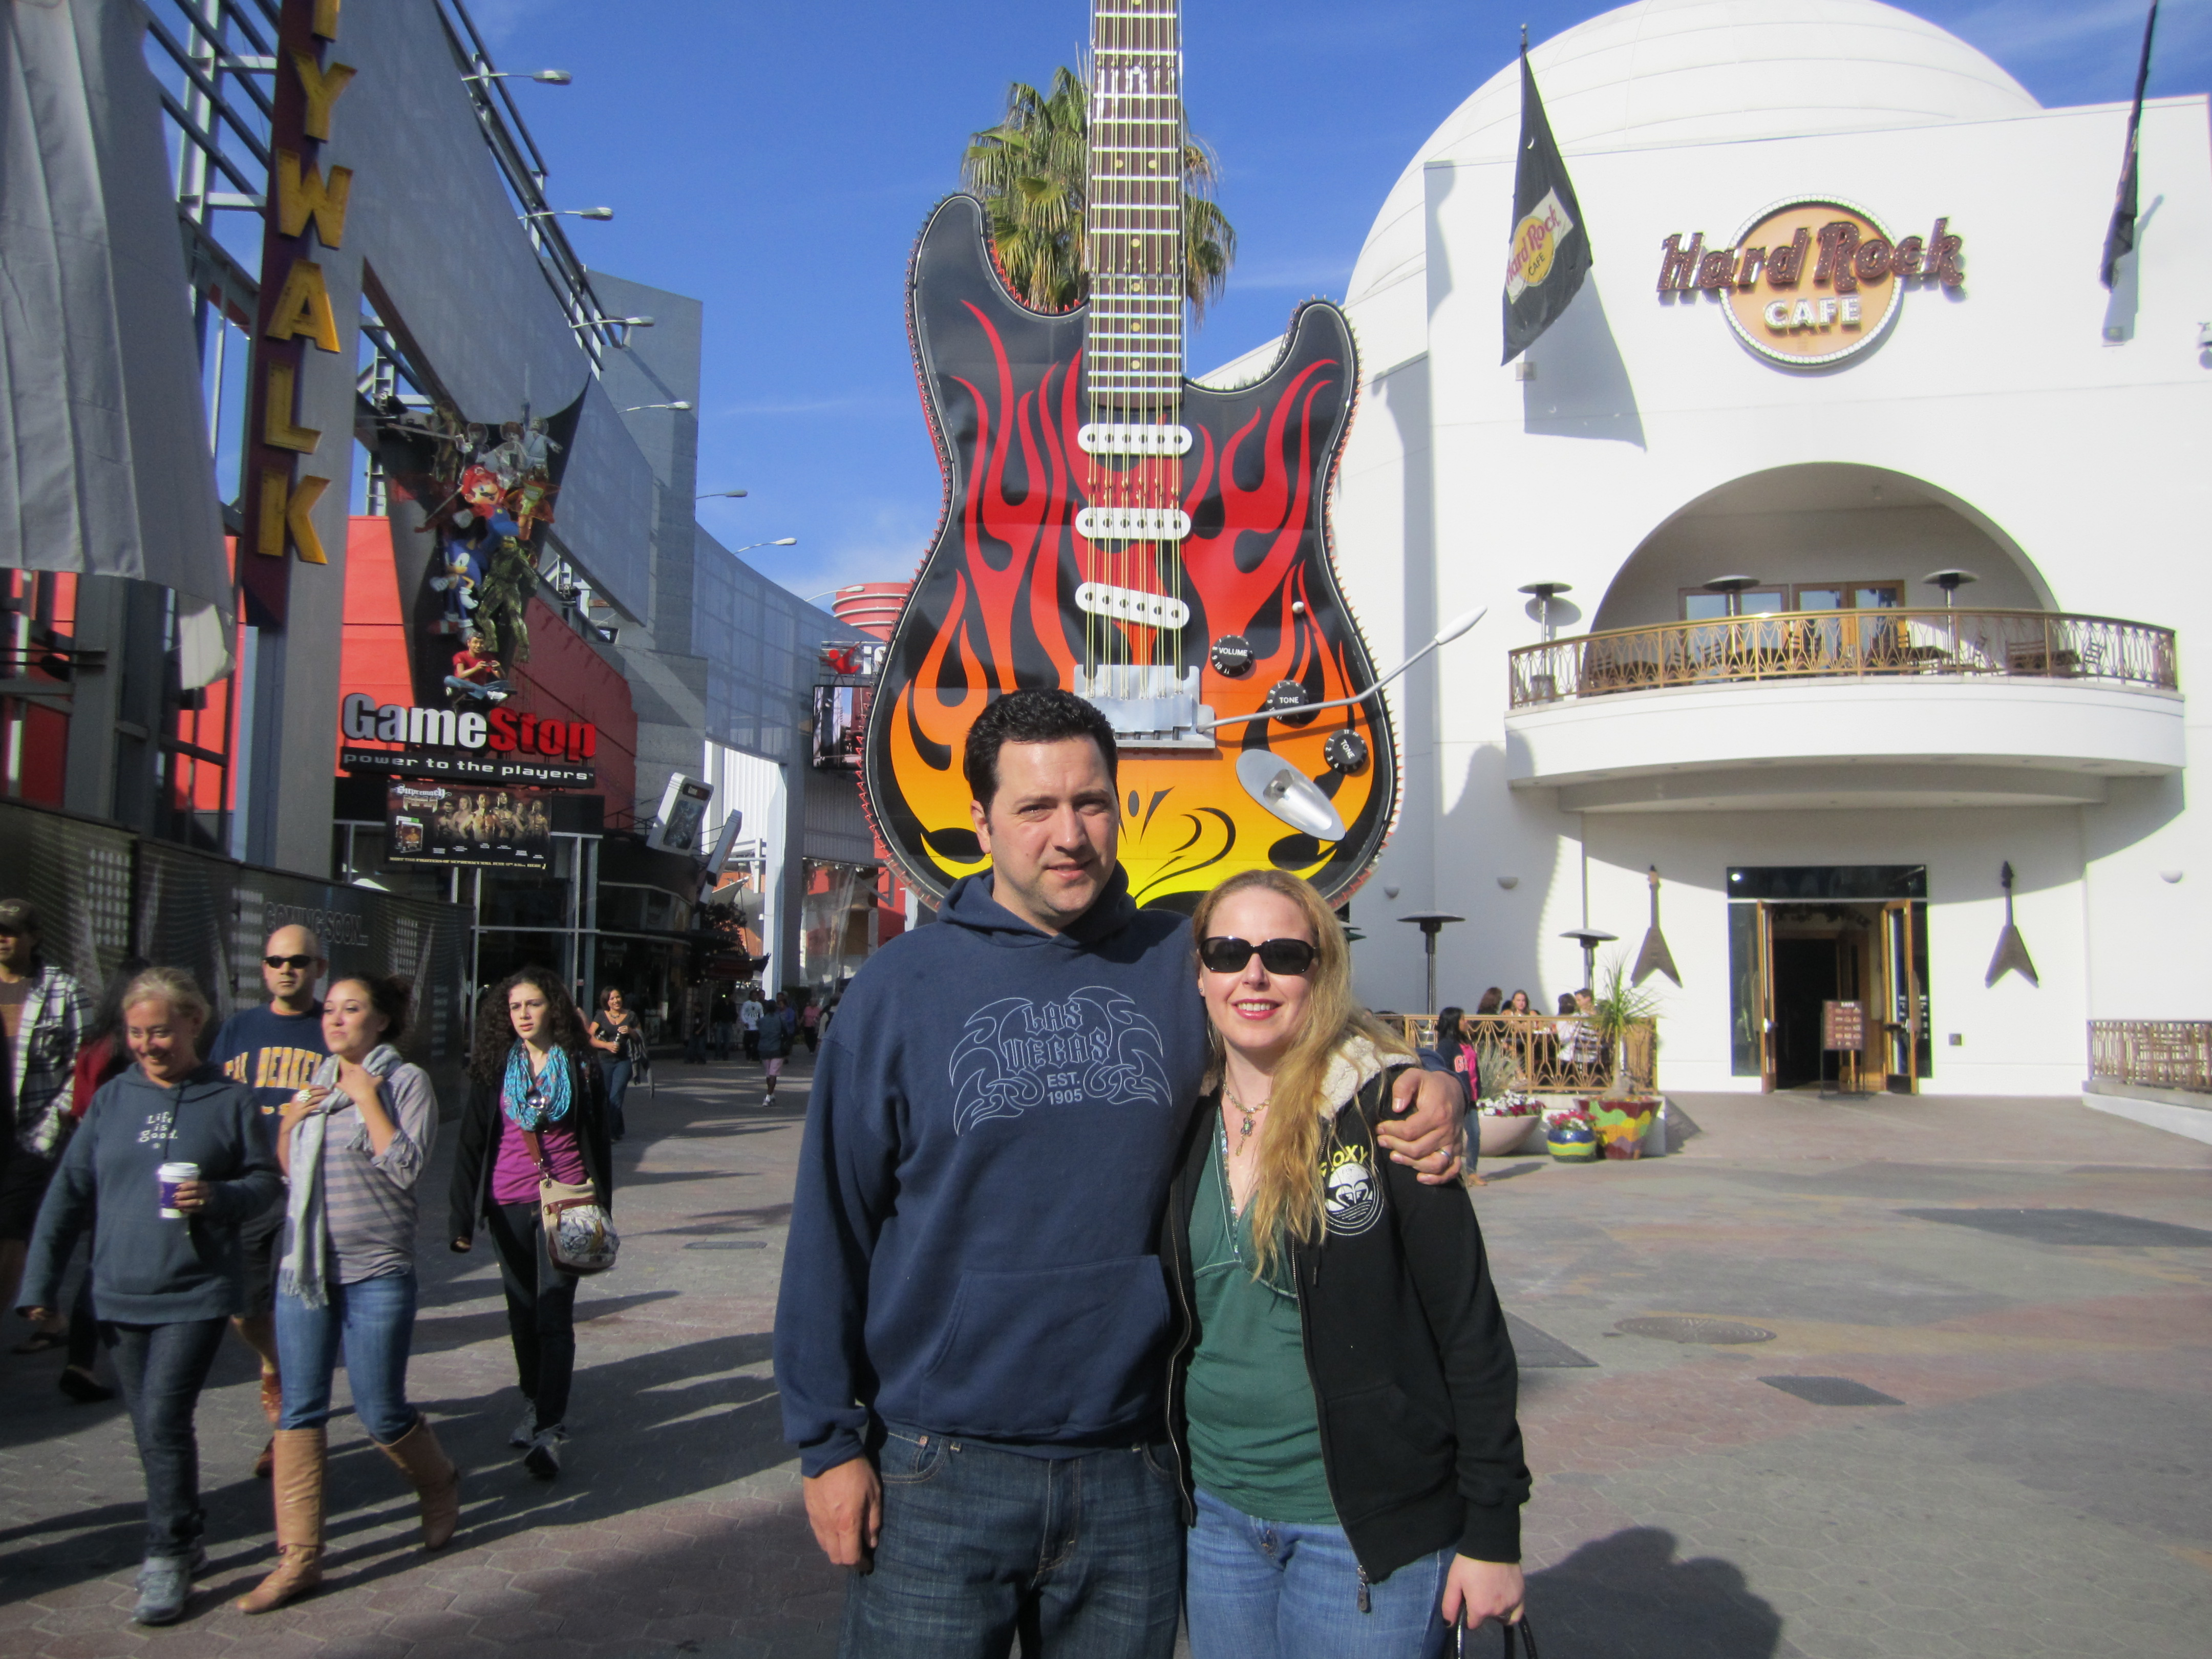 This website offers information for the theme park, Universal Studios Hollywood. Information includes a photo gallery of the park, description of the rides and numerous features of the park. It also allows the user to purchase tickets at regular.